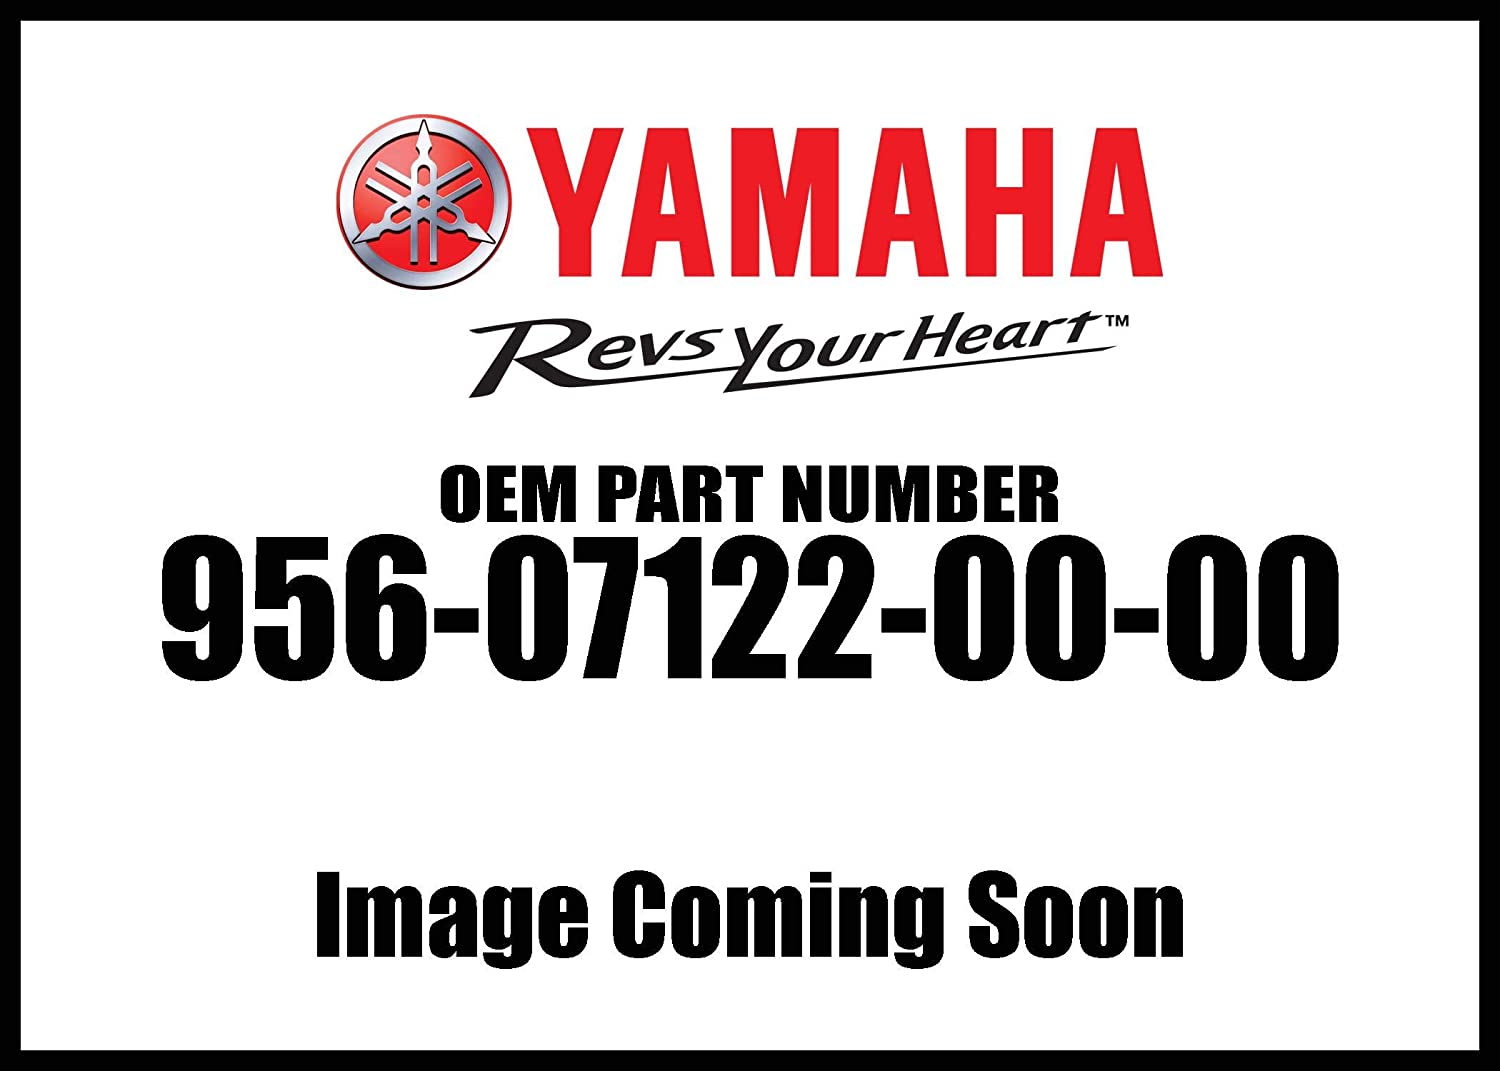 Yamaha 95607-12200-00 Nut, U Flange; 956071220000 Made by Yamaha